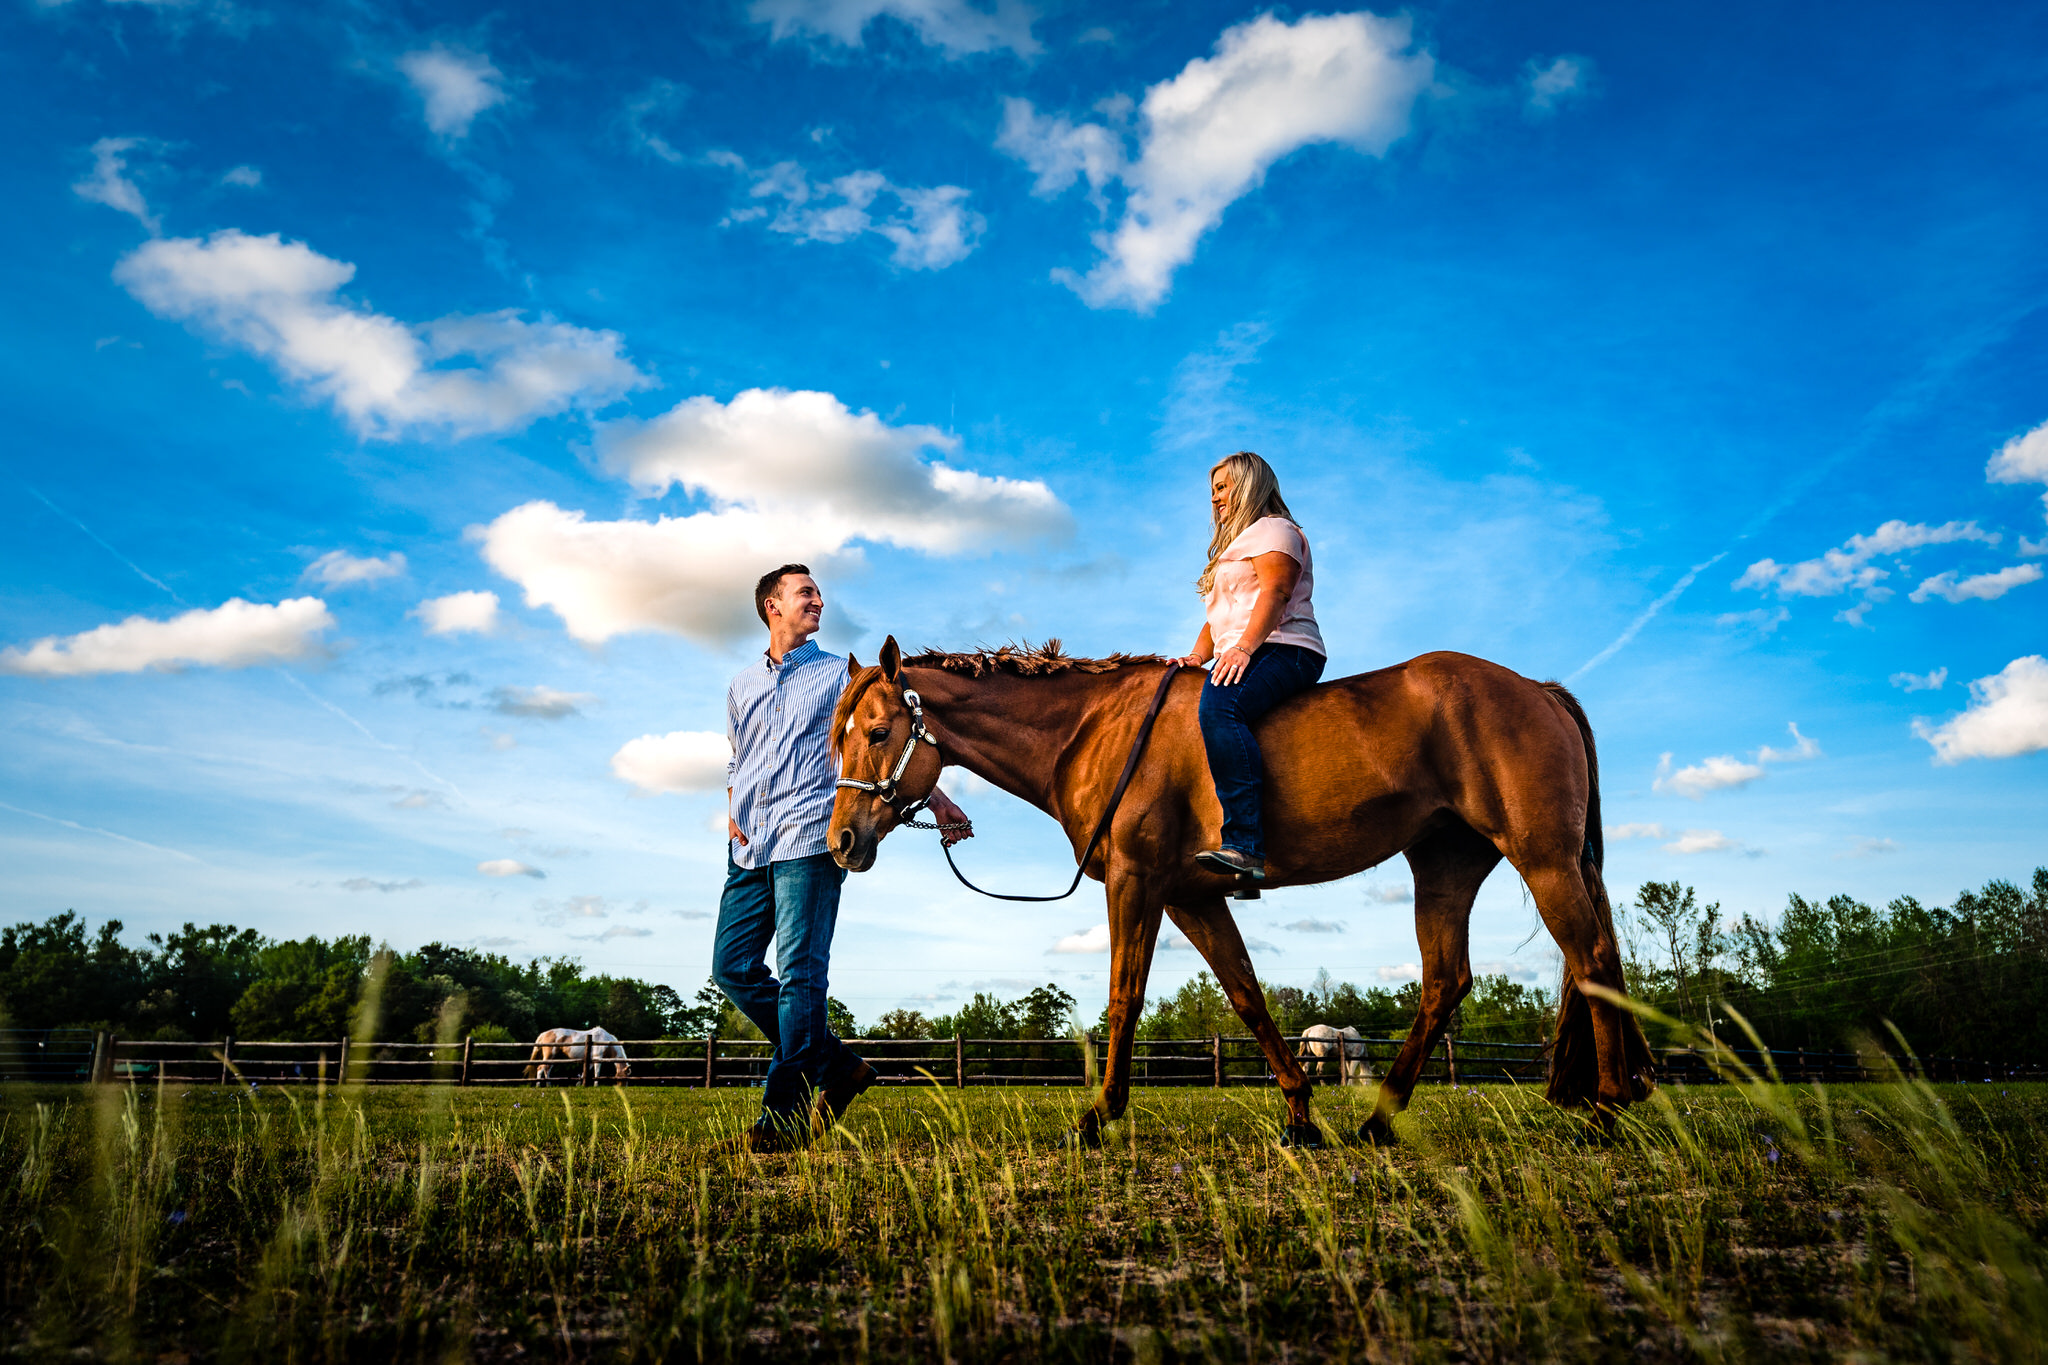 Nikki&Logan-Engagement-Cottonwood-Farm5.jpg